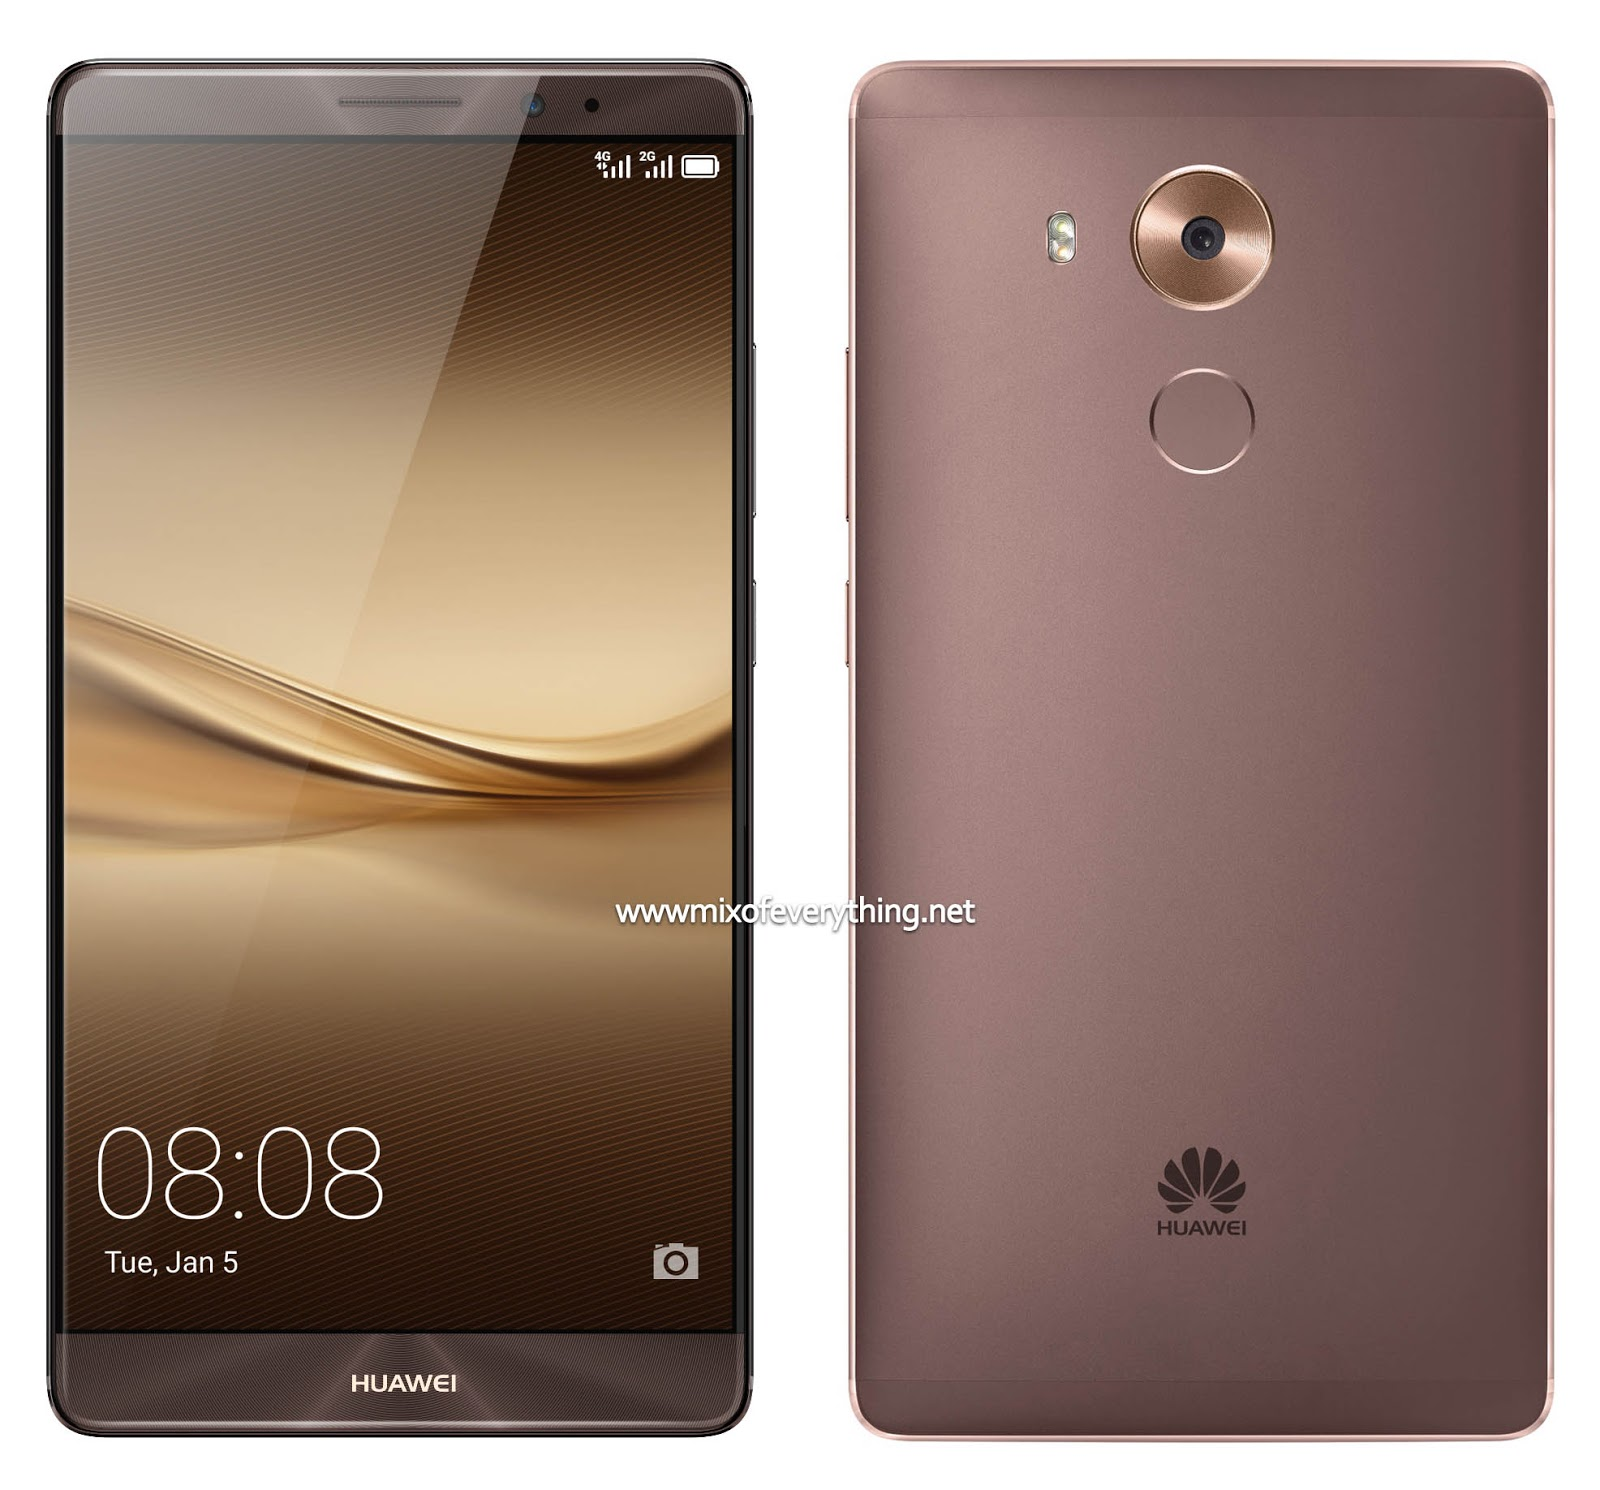 With The Successful Launch Of Huawei S Flagship Mate 8 They Now Offer A New Shade For Impressive Device Mocha Brown Unique Deep Color Hint